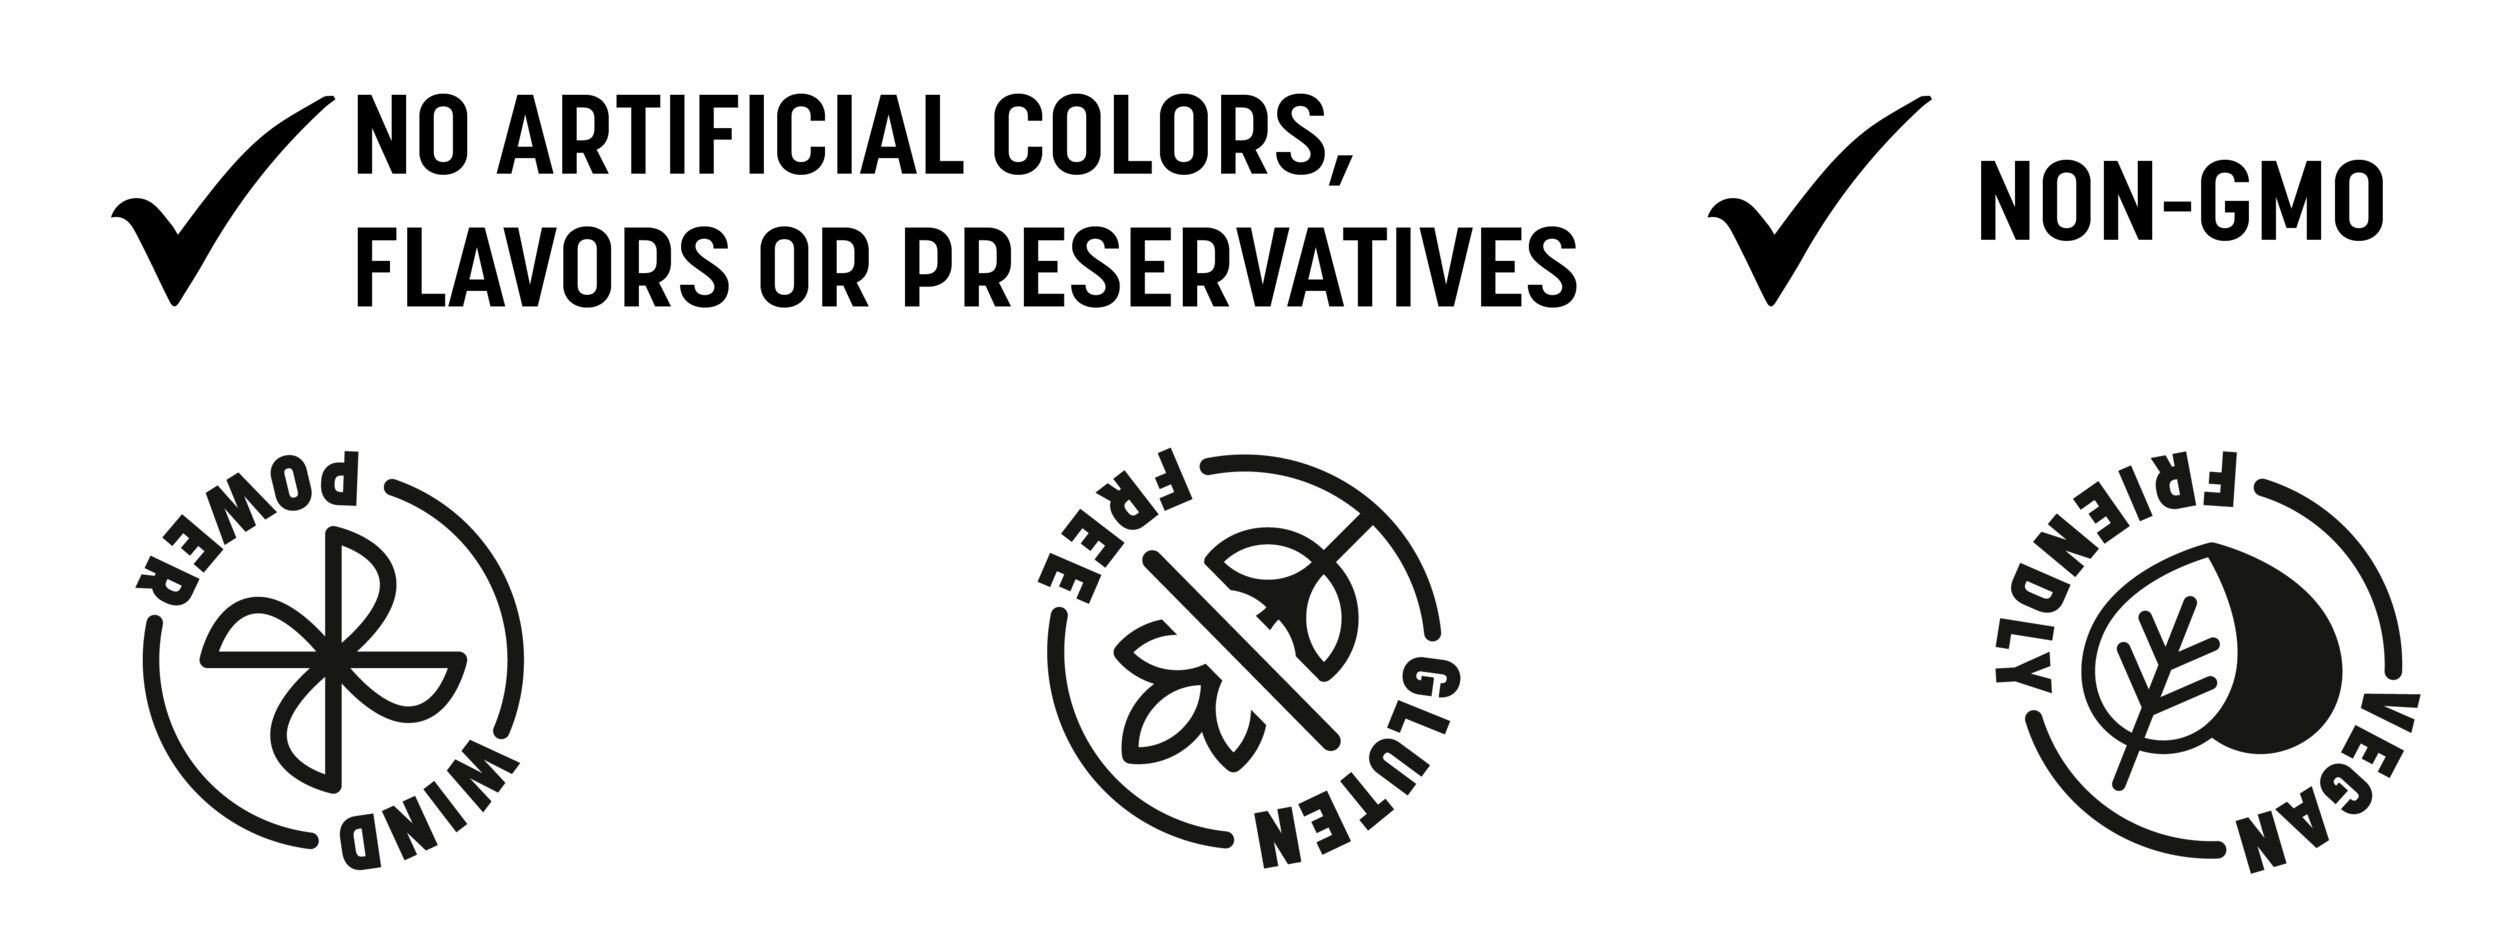 Capao_Icons_plus_perservatives-01-01.jpg